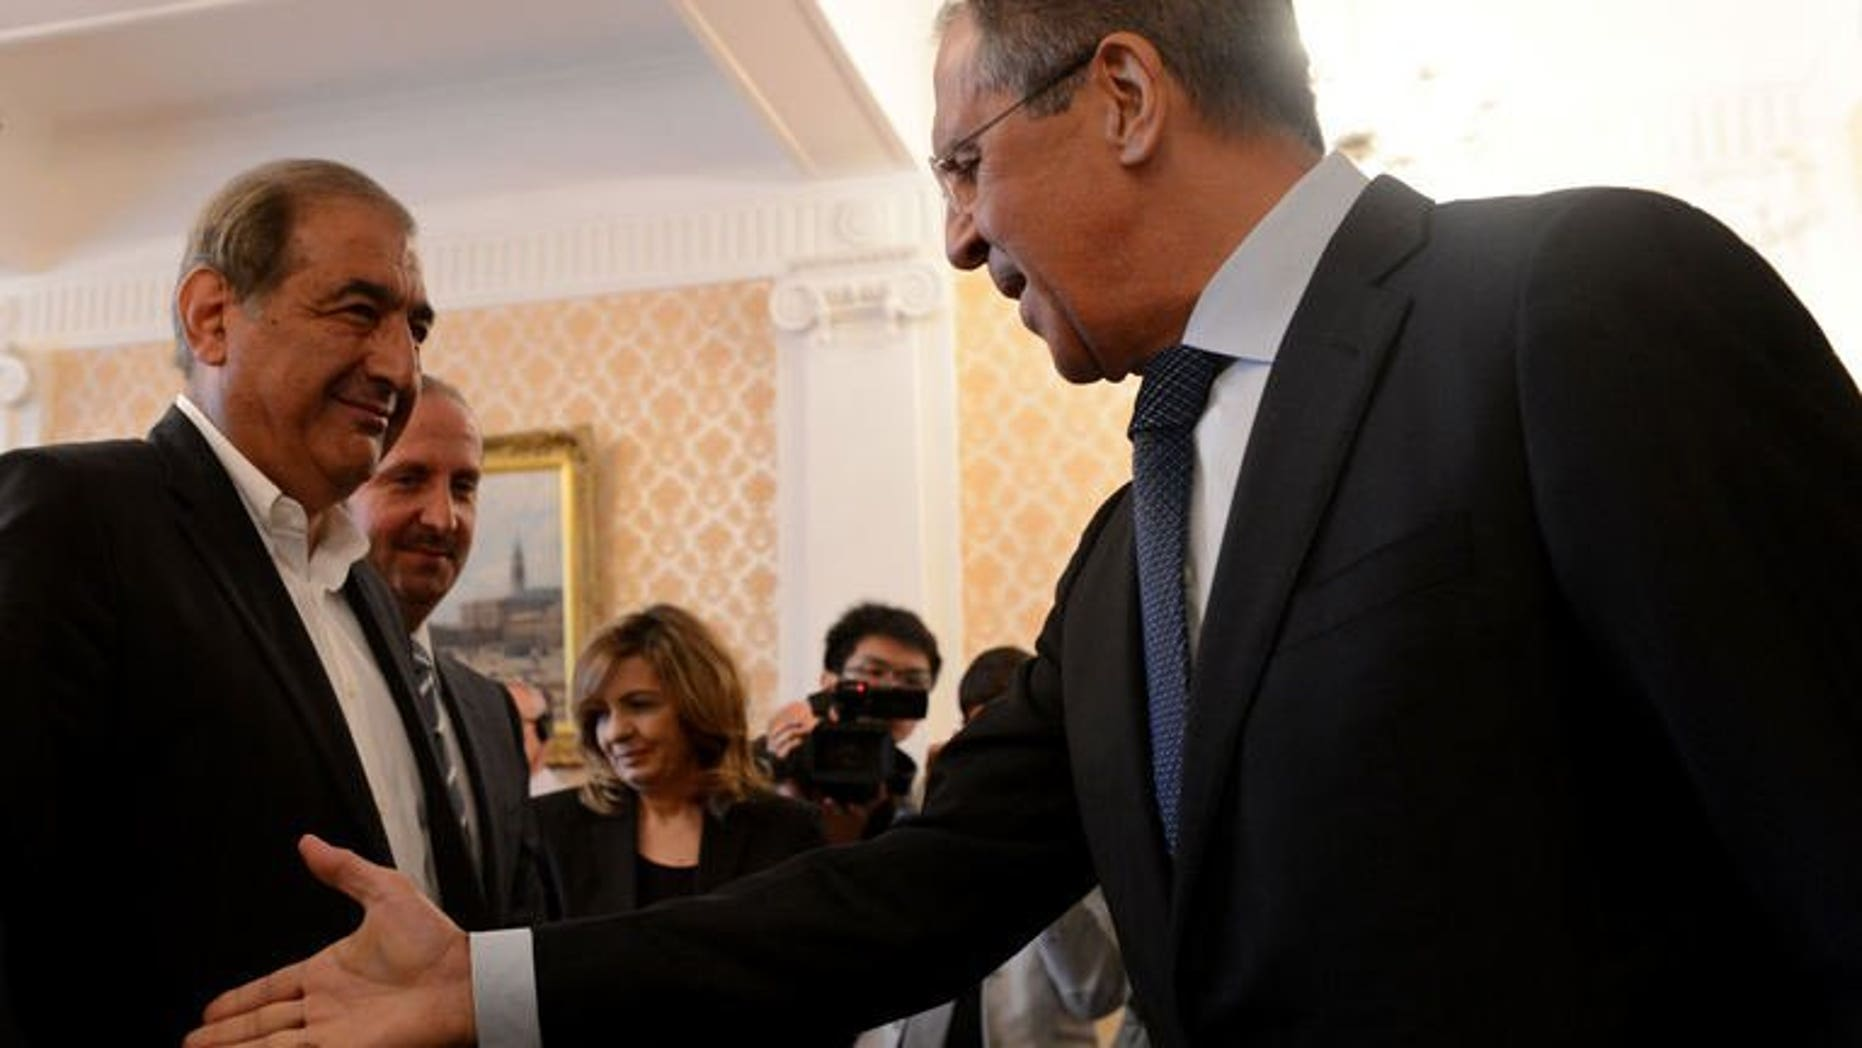 Russian Foreign Minister Sergei Lavrov (R) speaks with Syrian deputy Prime Minister Qadri Jamil during their meeting in Moscow on July 22, 2013. Russia is pressing on with efforts to hold a peace conference in Geneva to end the bloodshed in Syria as soon as possible but the opposition is so far not showing readiness to take part, Lavrov said Monday.